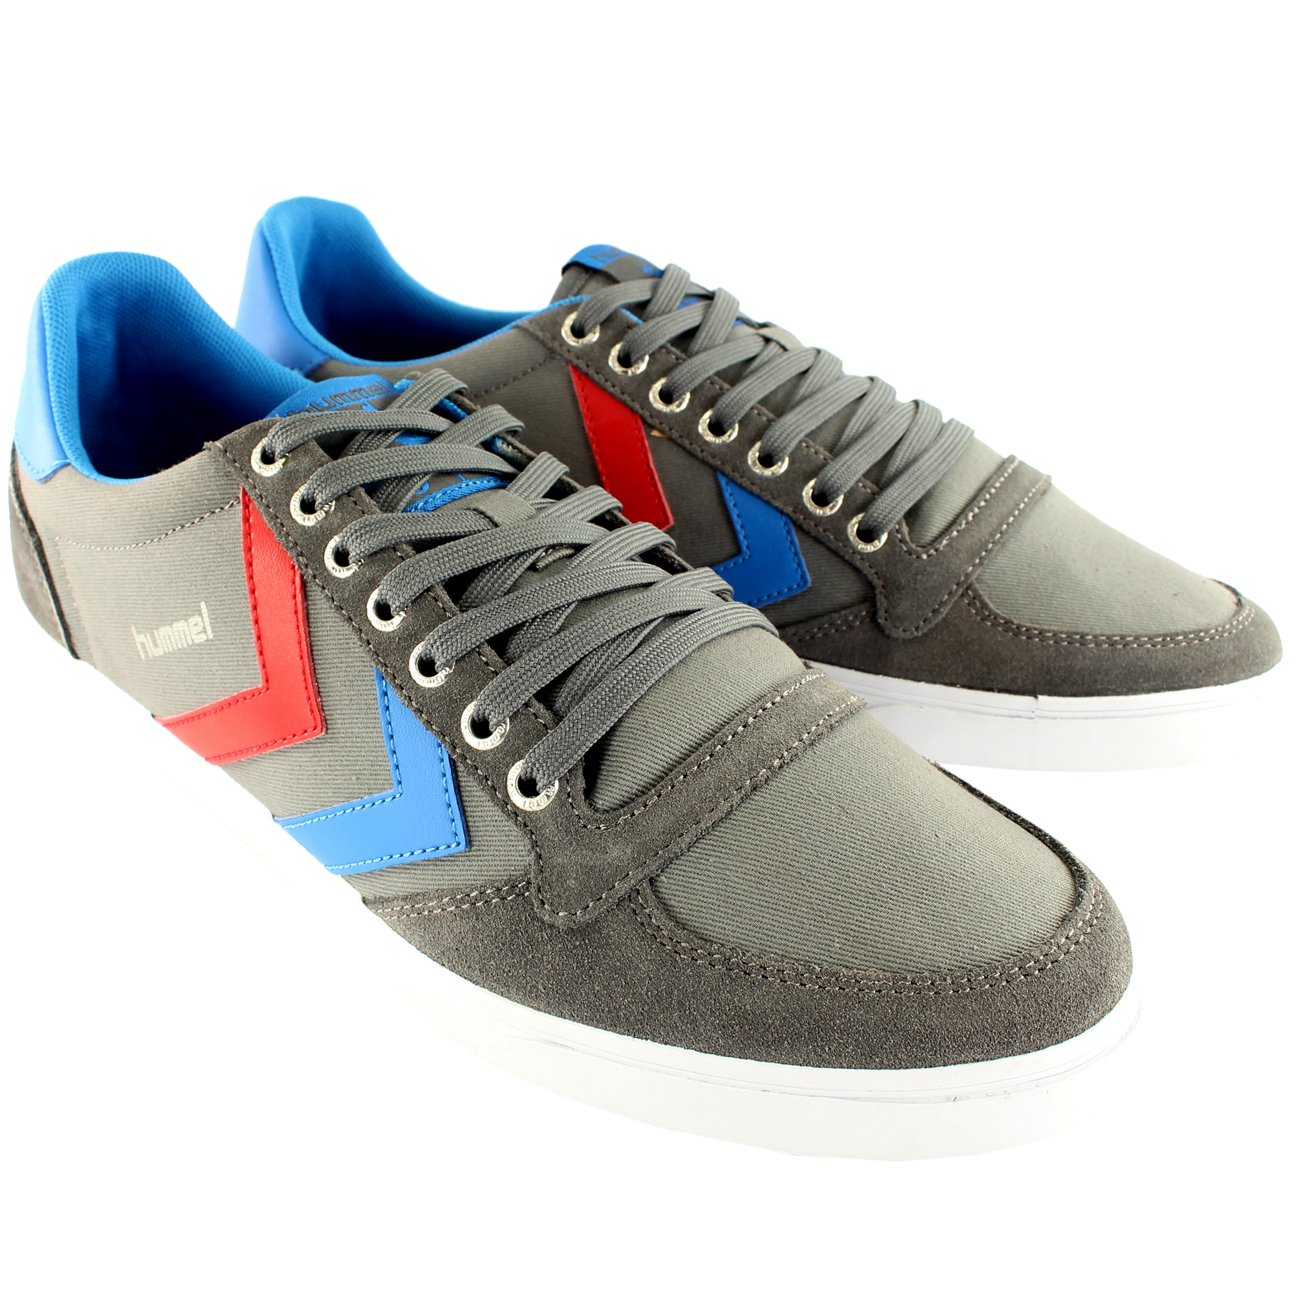 promo code 2bb73 4aa0b Womens Hummel Slimmer Stadil Low Leather Casual Suede Lace Up Sneakers